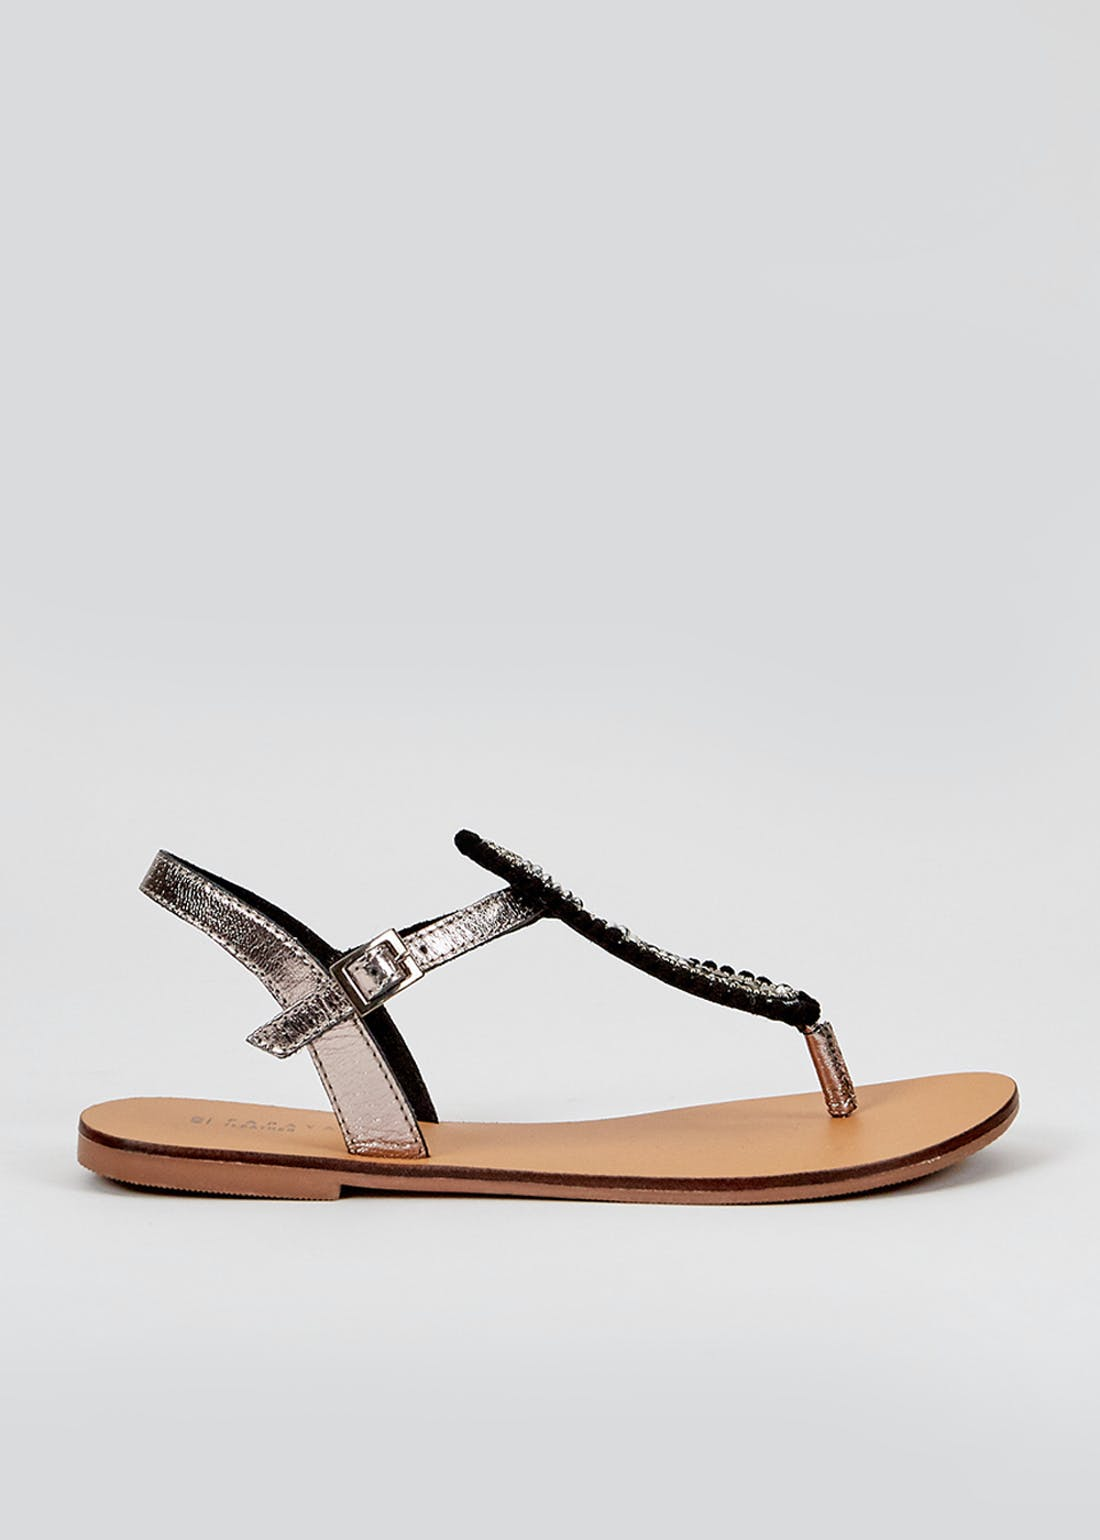 Black Beaded Leather Sandals